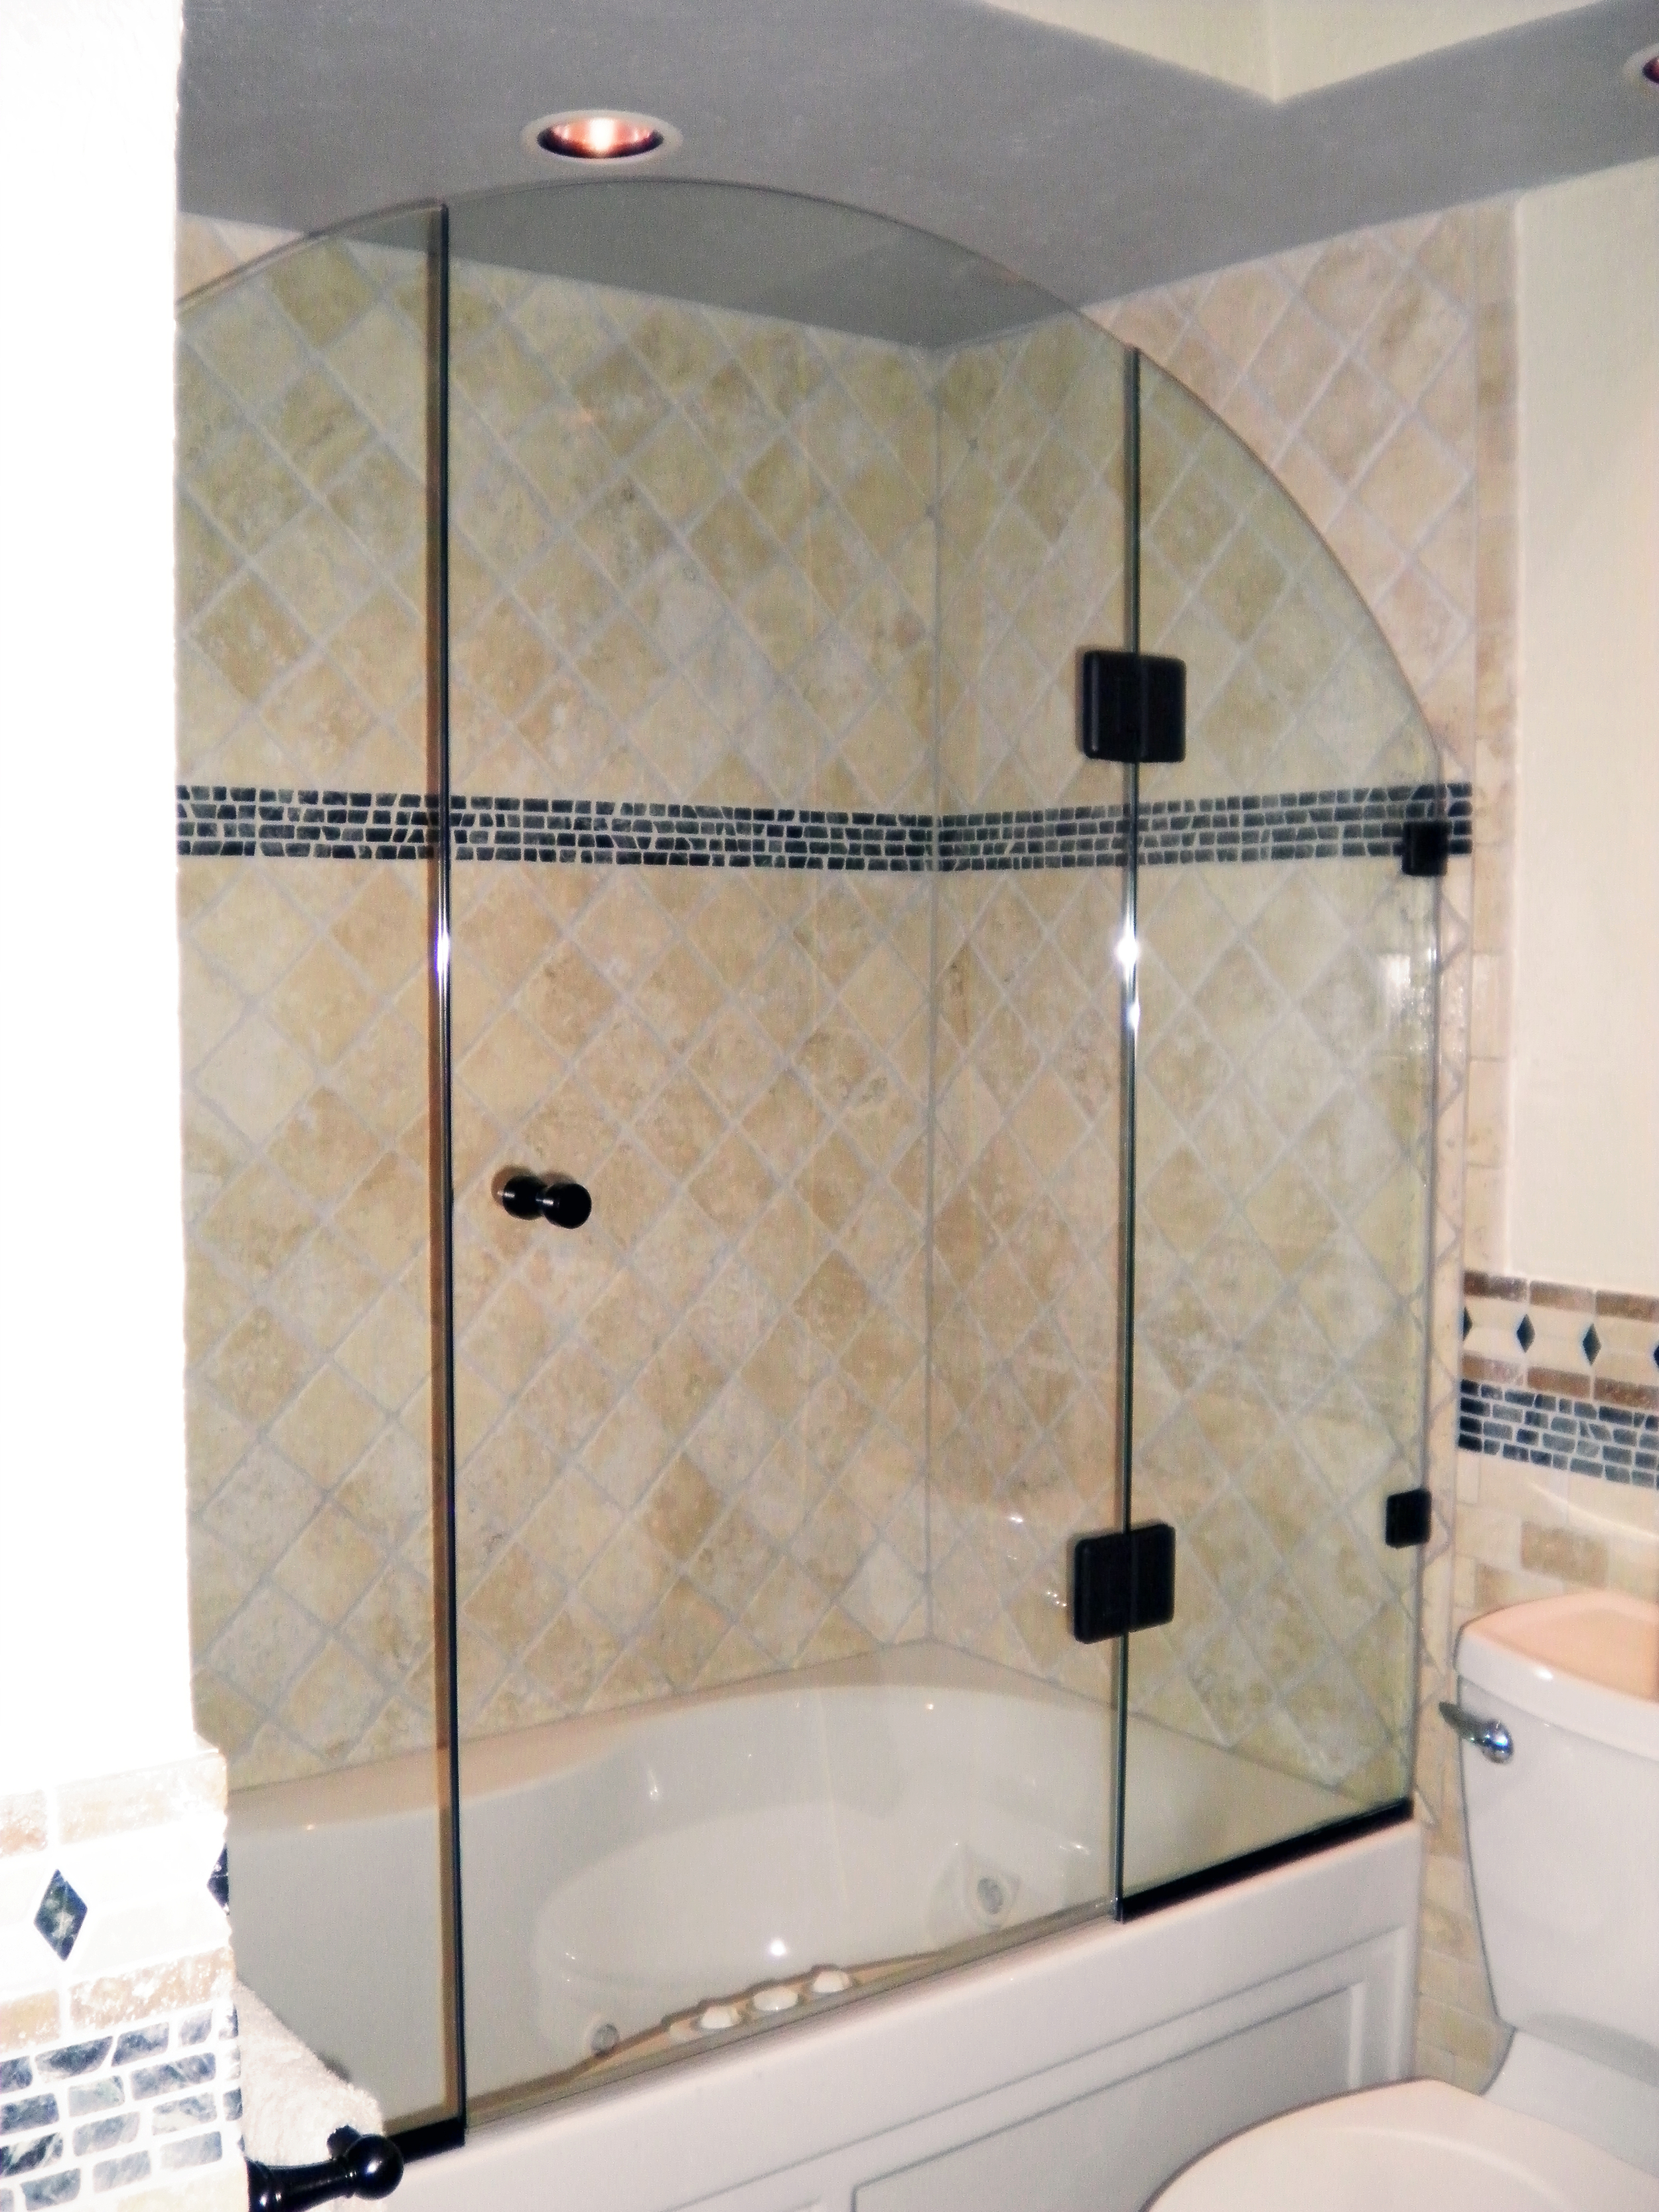 Custom-Cut Rounded Shower Enclosure